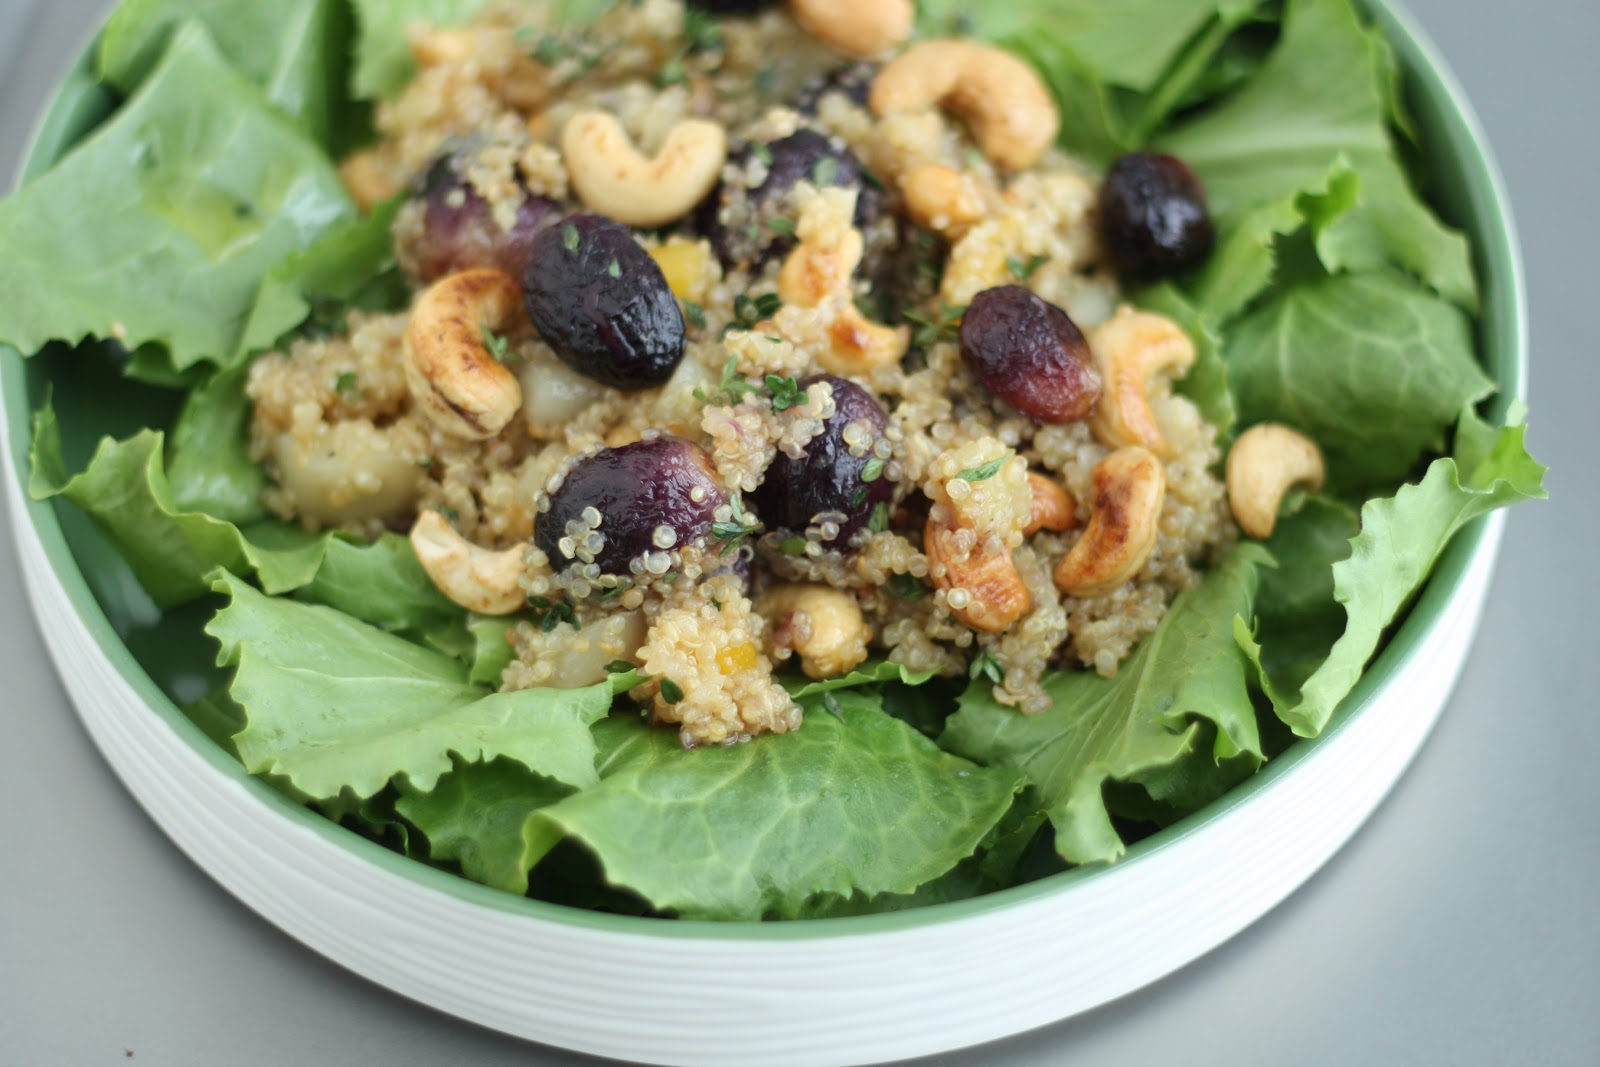 ... : Roasted Grapes with Cashews, Quinoa and Thyme over Escarole Greens